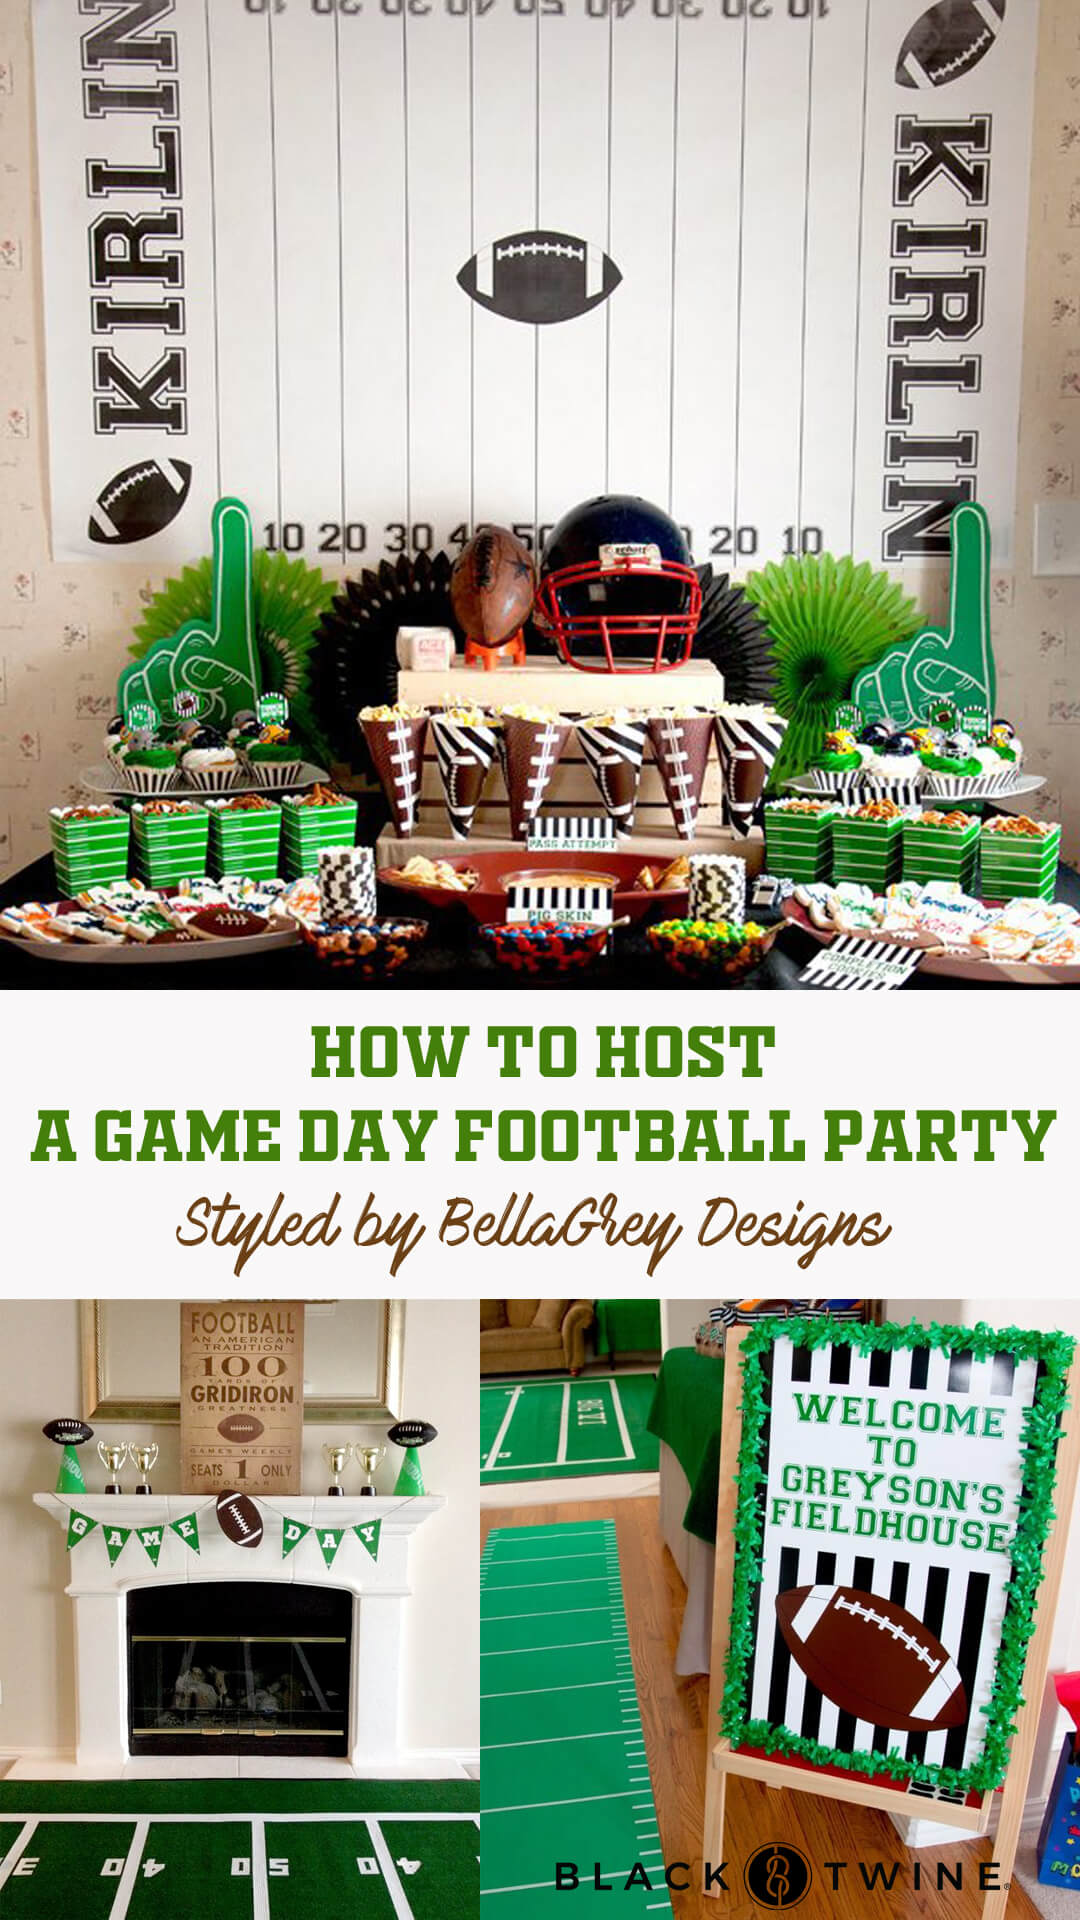 Football Party by BellaGrey Designs | Black Twine